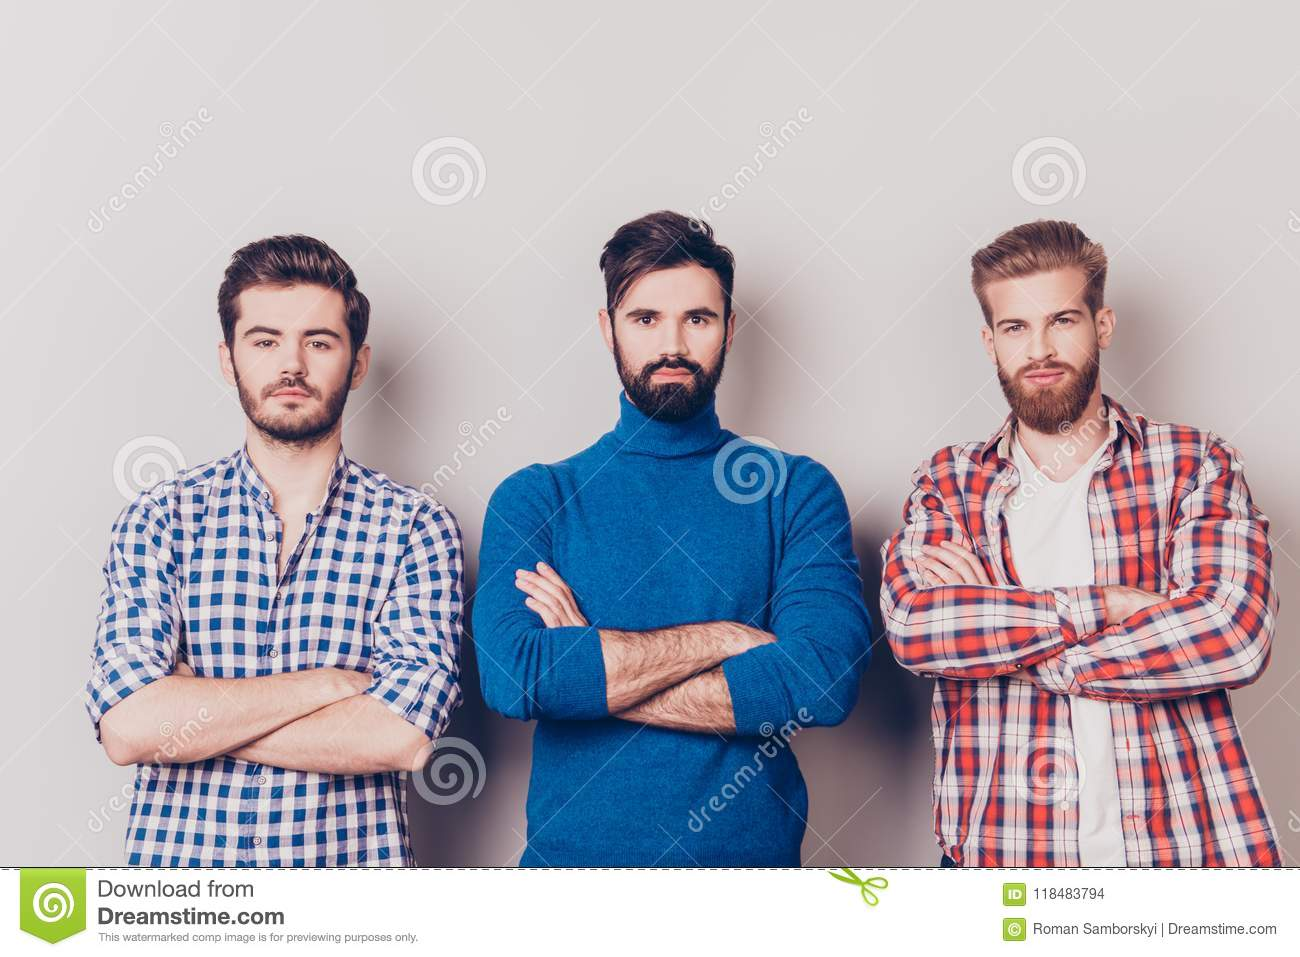 Ethnicity, multicultural diversity. Three serious harsh men are